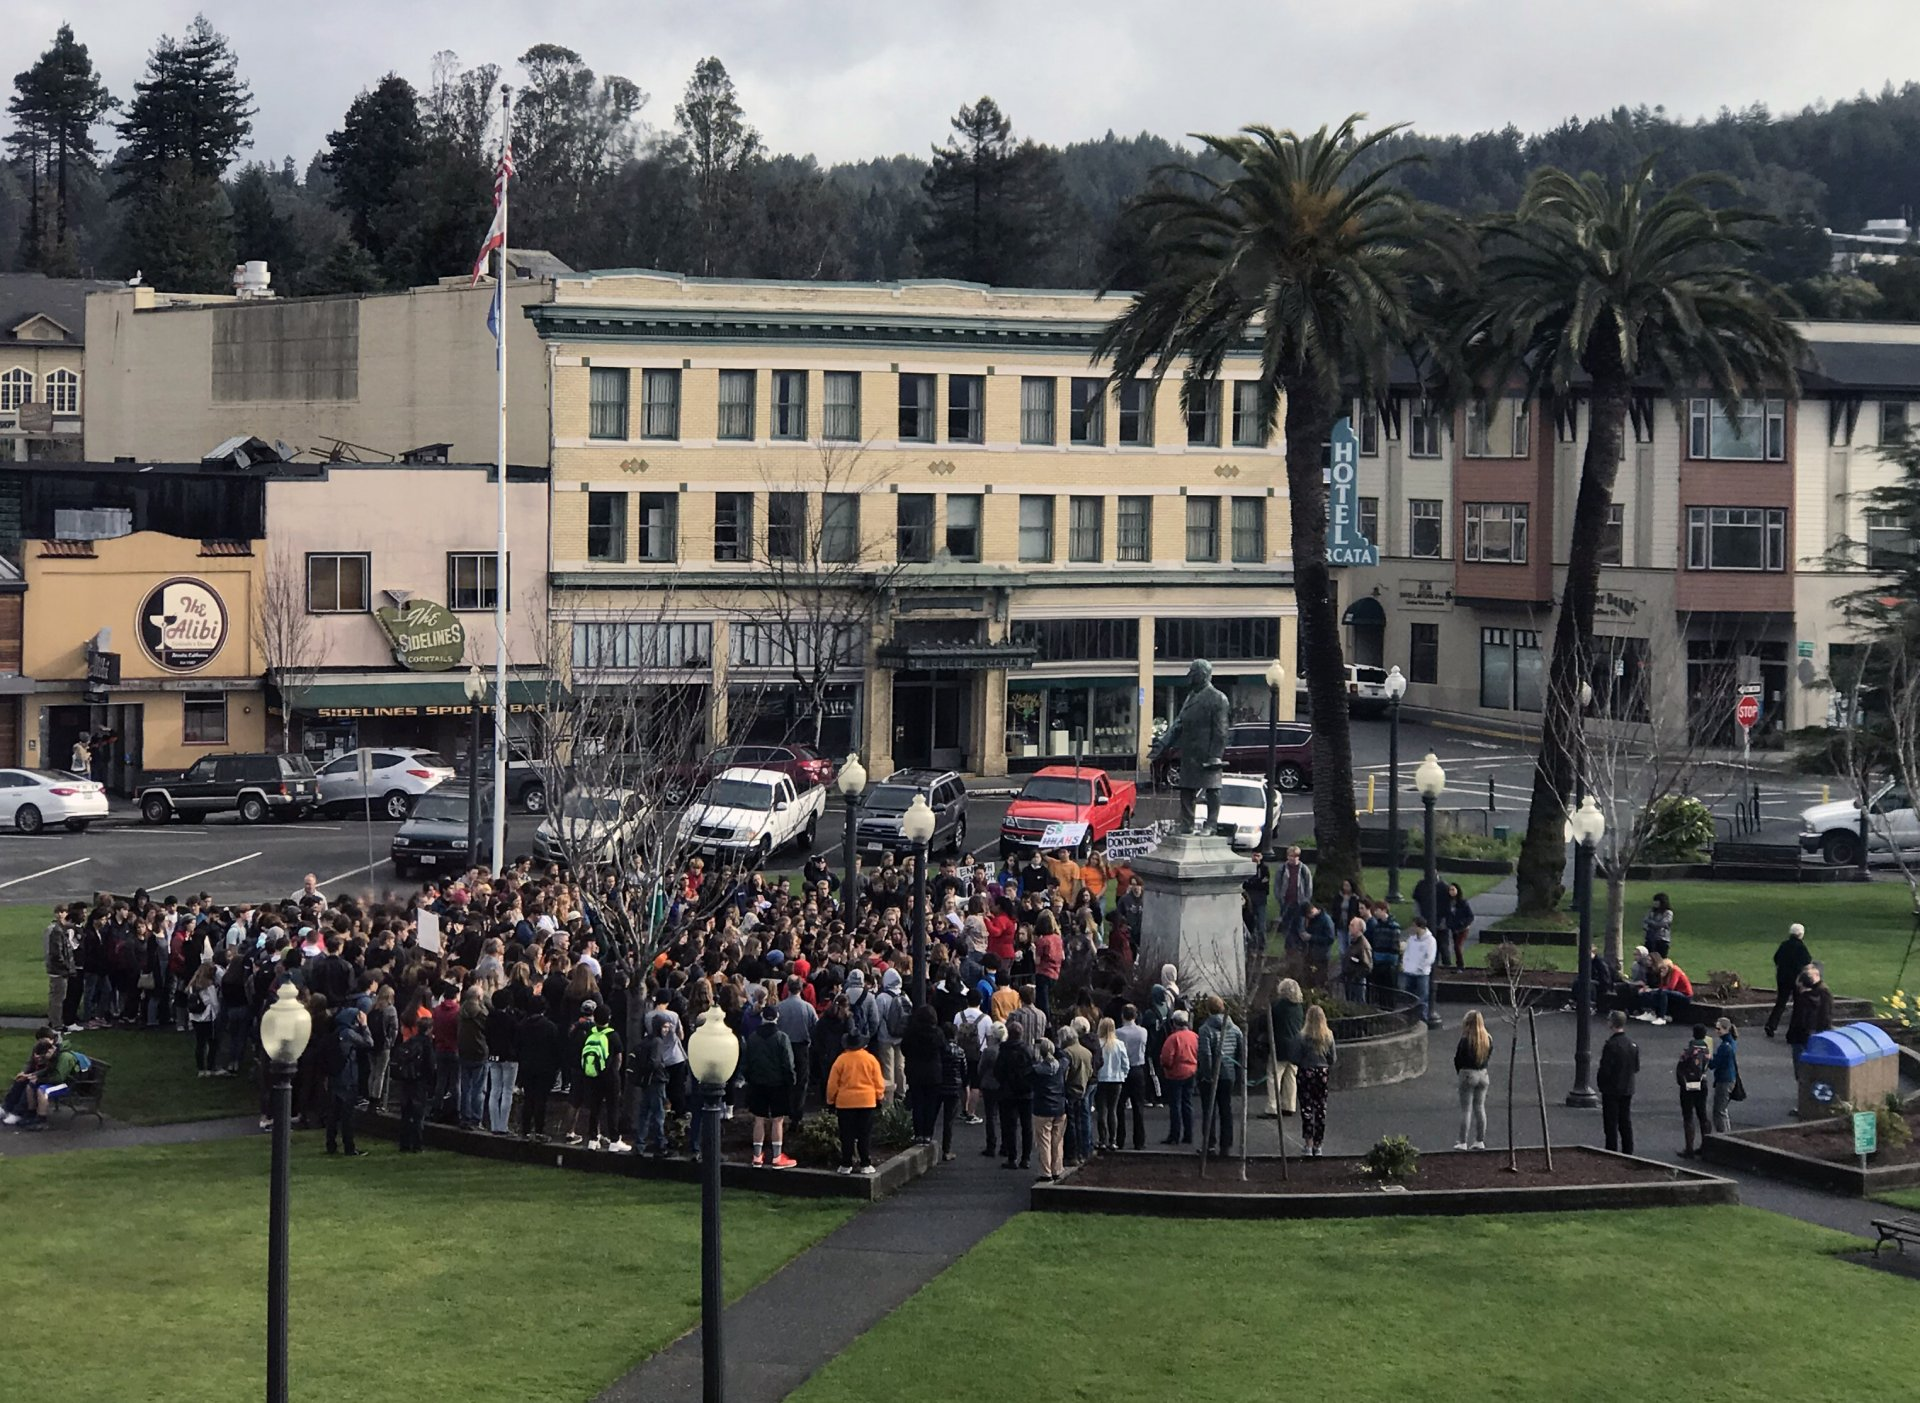 Arcata High students joined a nationwide walkout on March 14 and gathered in the Arcata Plaza. The walkout was in honor of the lives lost in the recent Marjory Stoneman Douglas High shooting. Photo by Jack Bareilles.